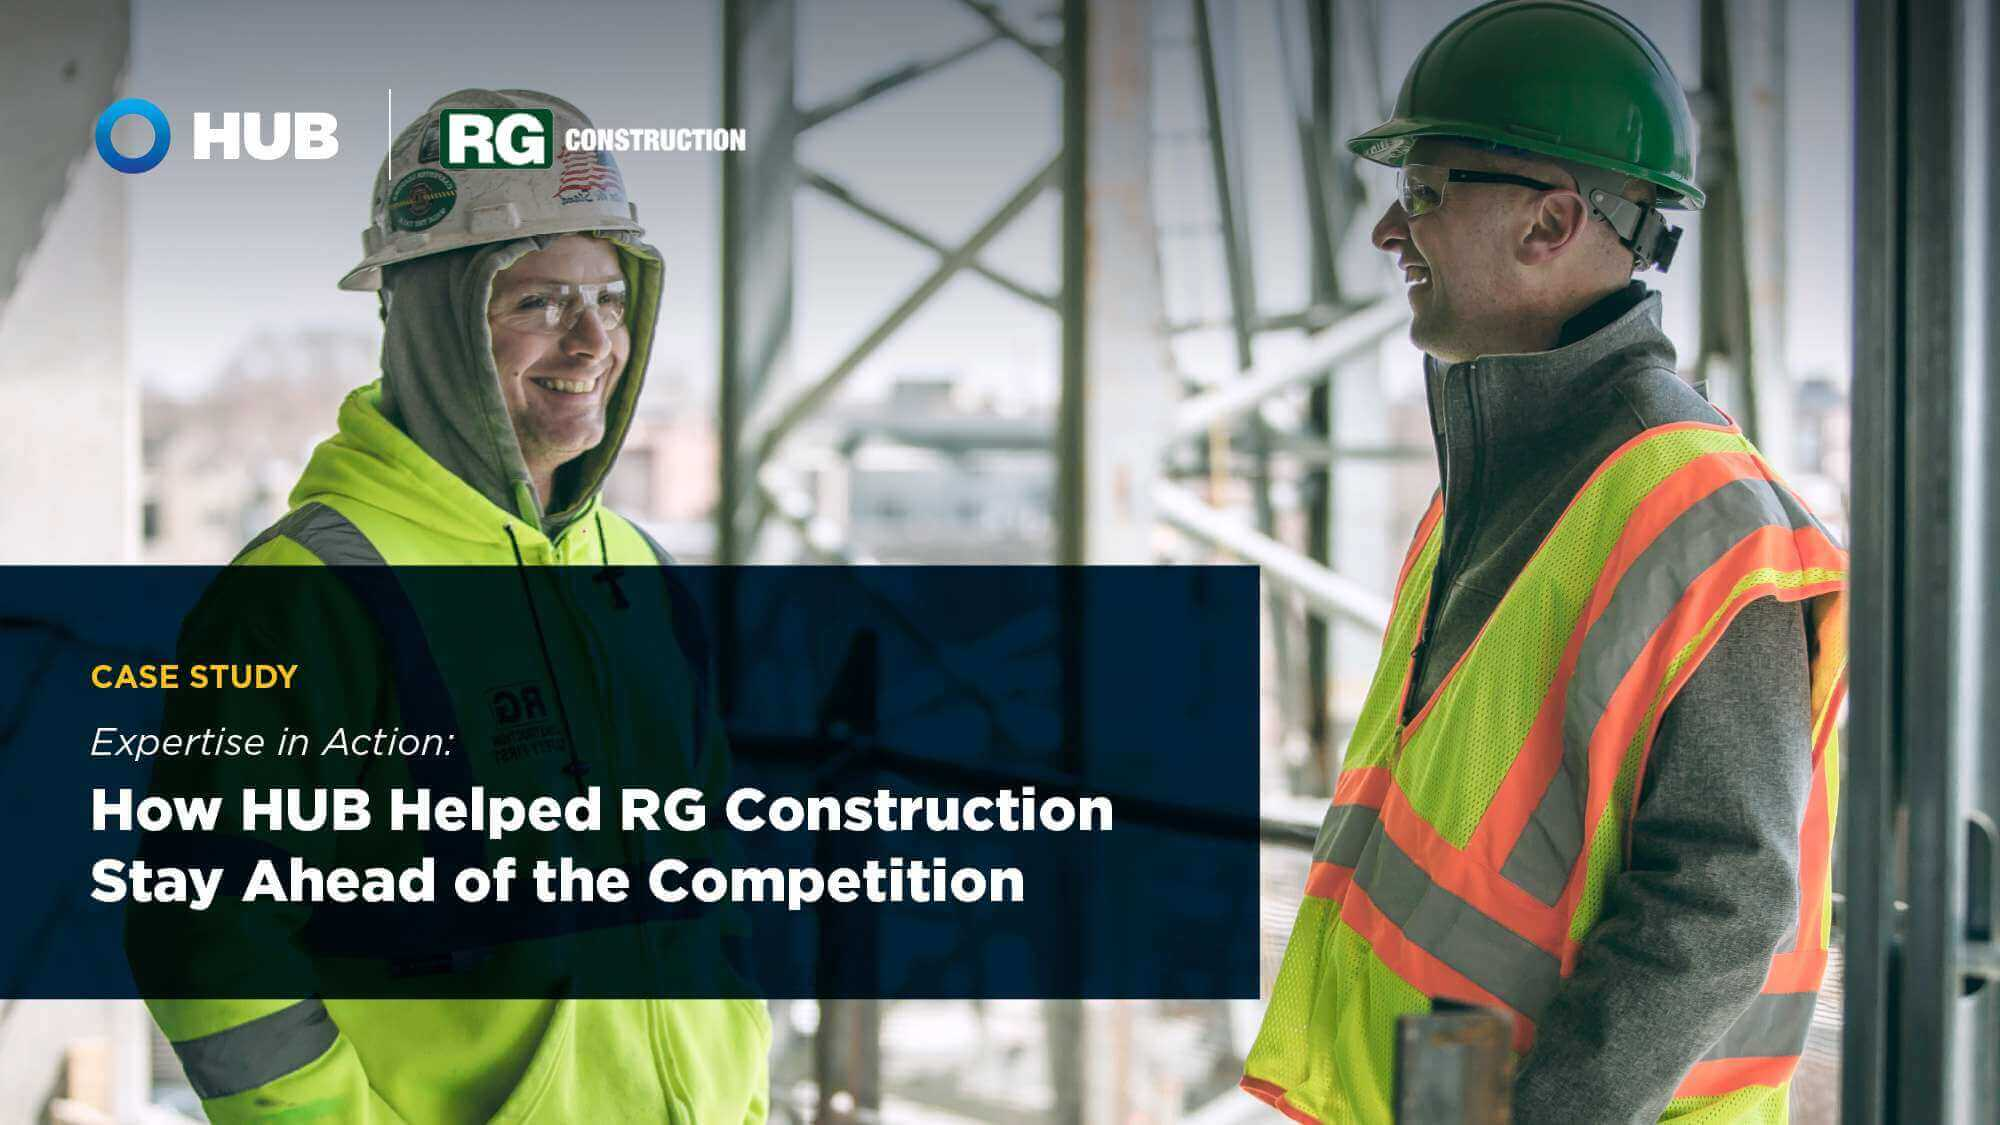 How HUB Helped RG Construction Stay Ahead of the Competition